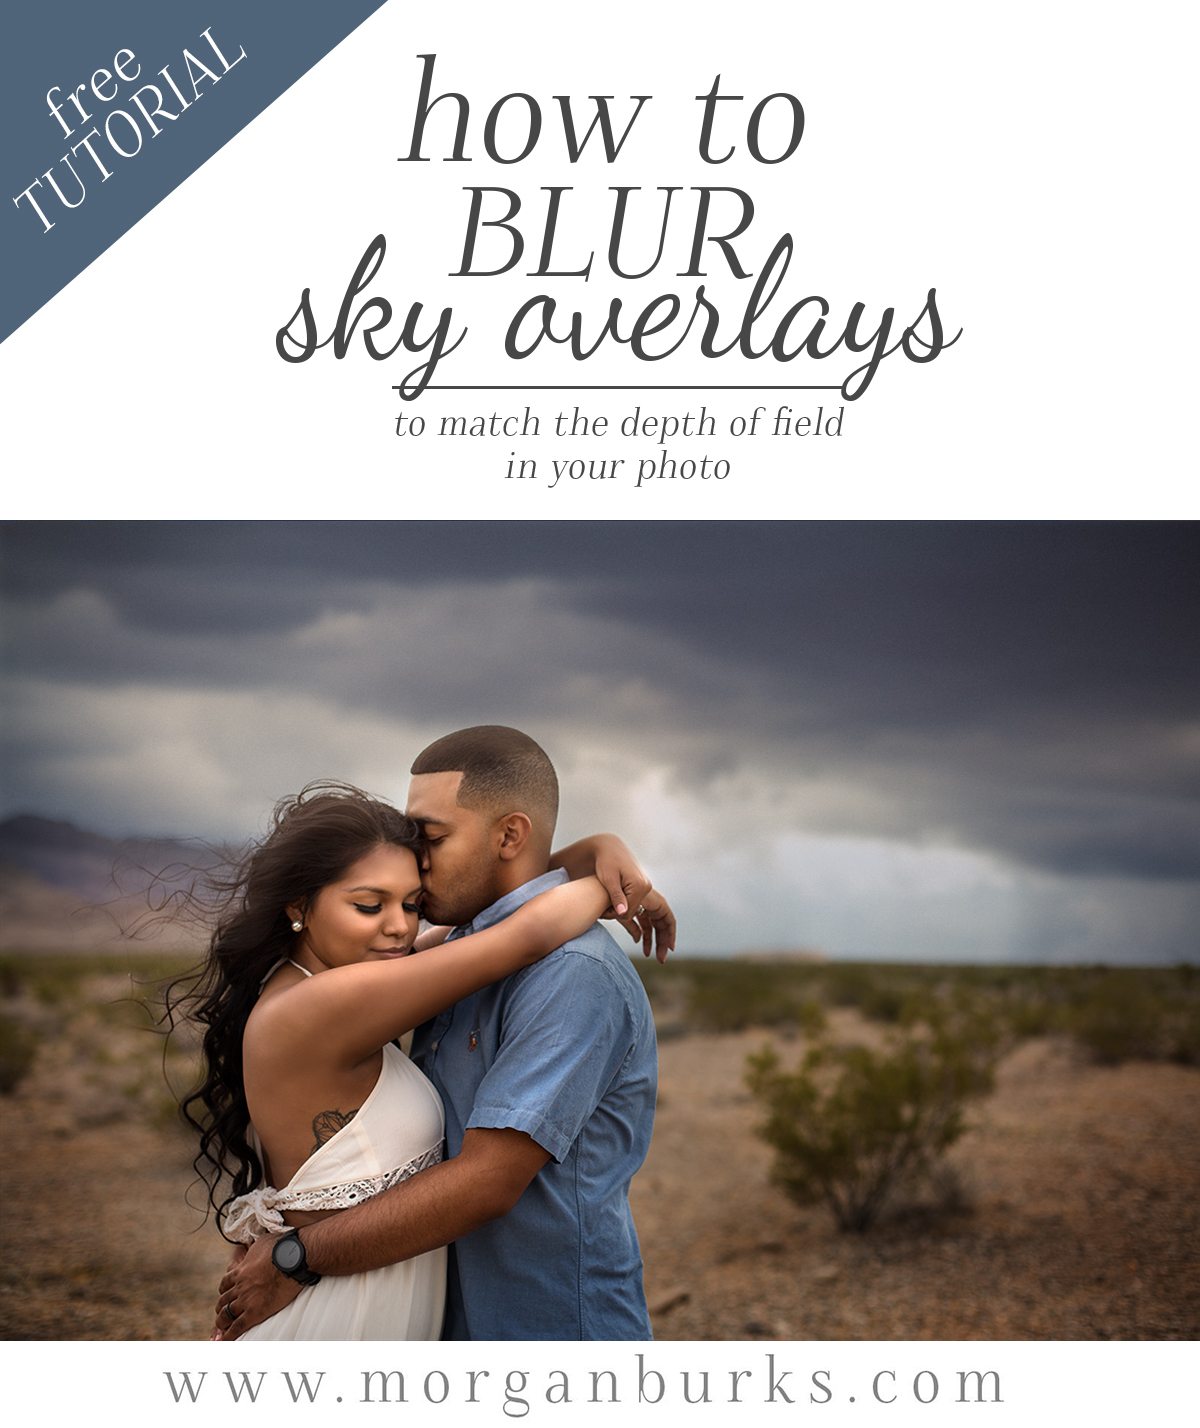 This video tutorial will show you how to blur Sky Overlays in Photoshop to match the depth of field in your image.